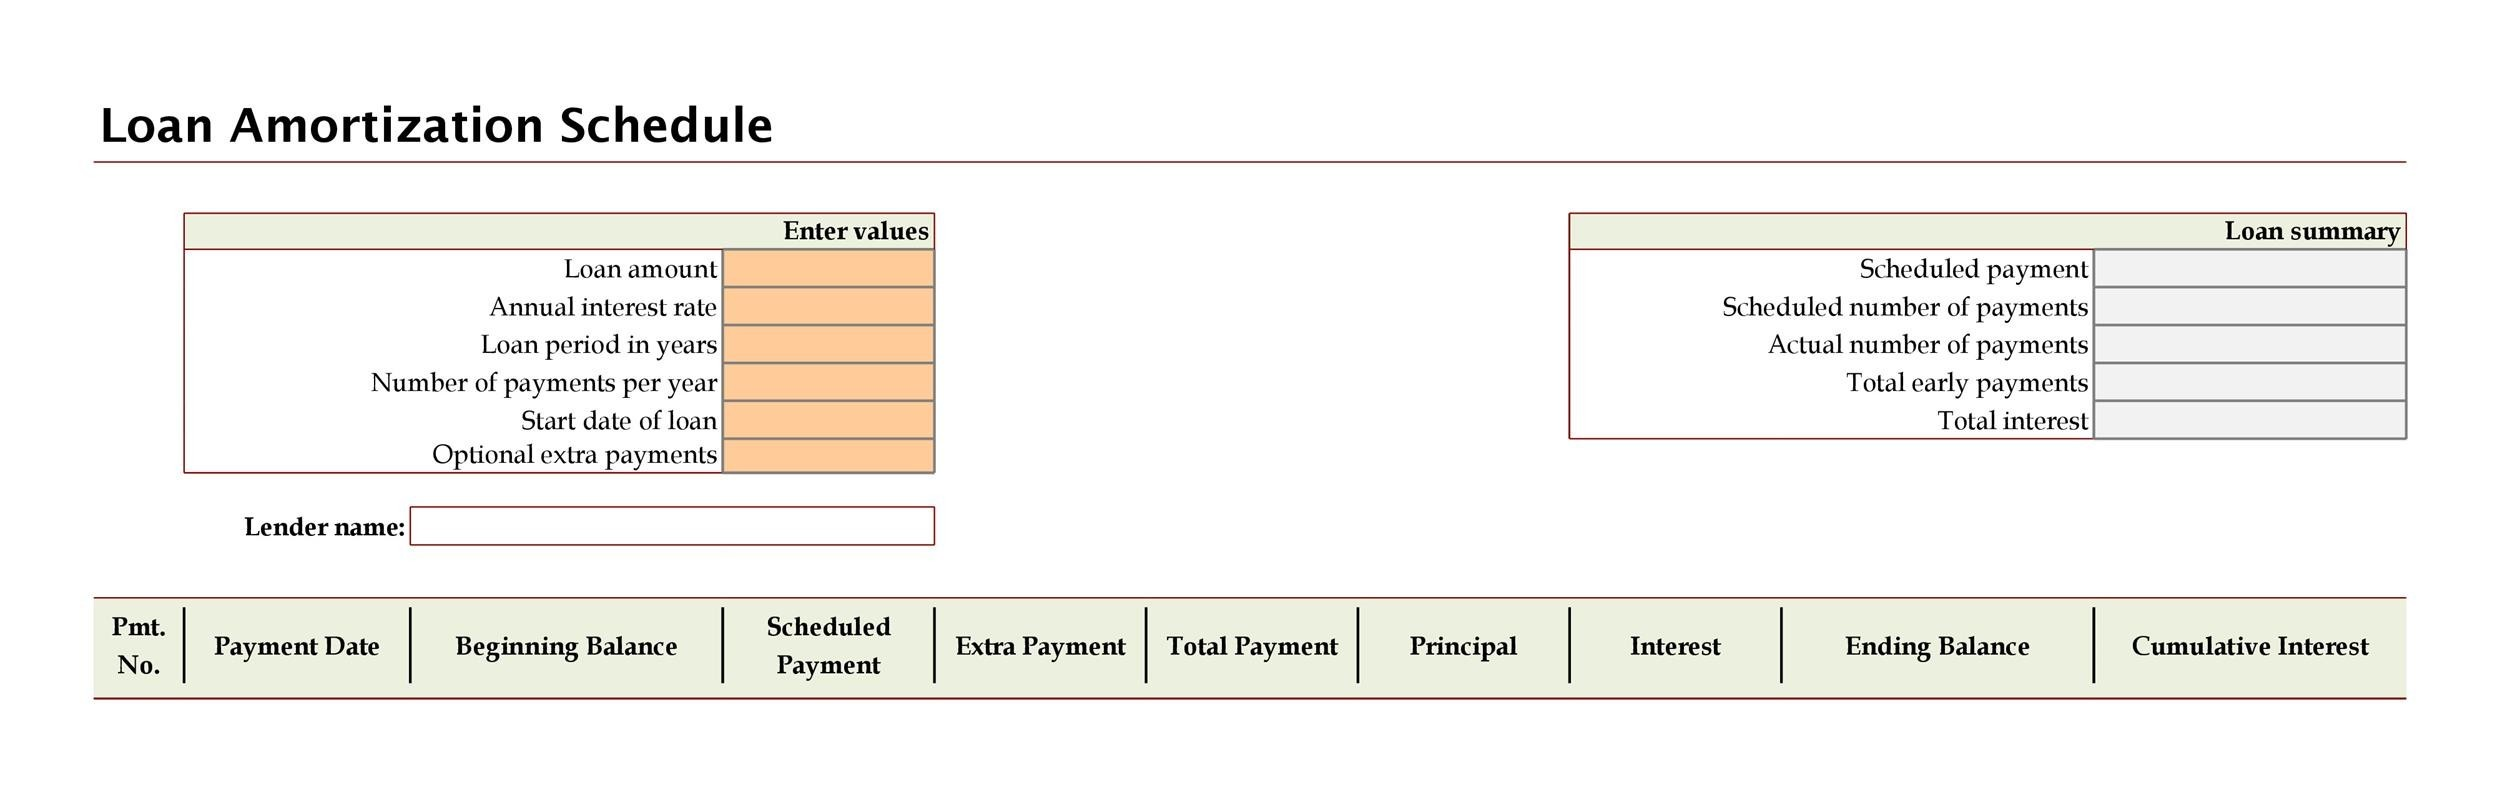 Free Loan Amortization Template 15